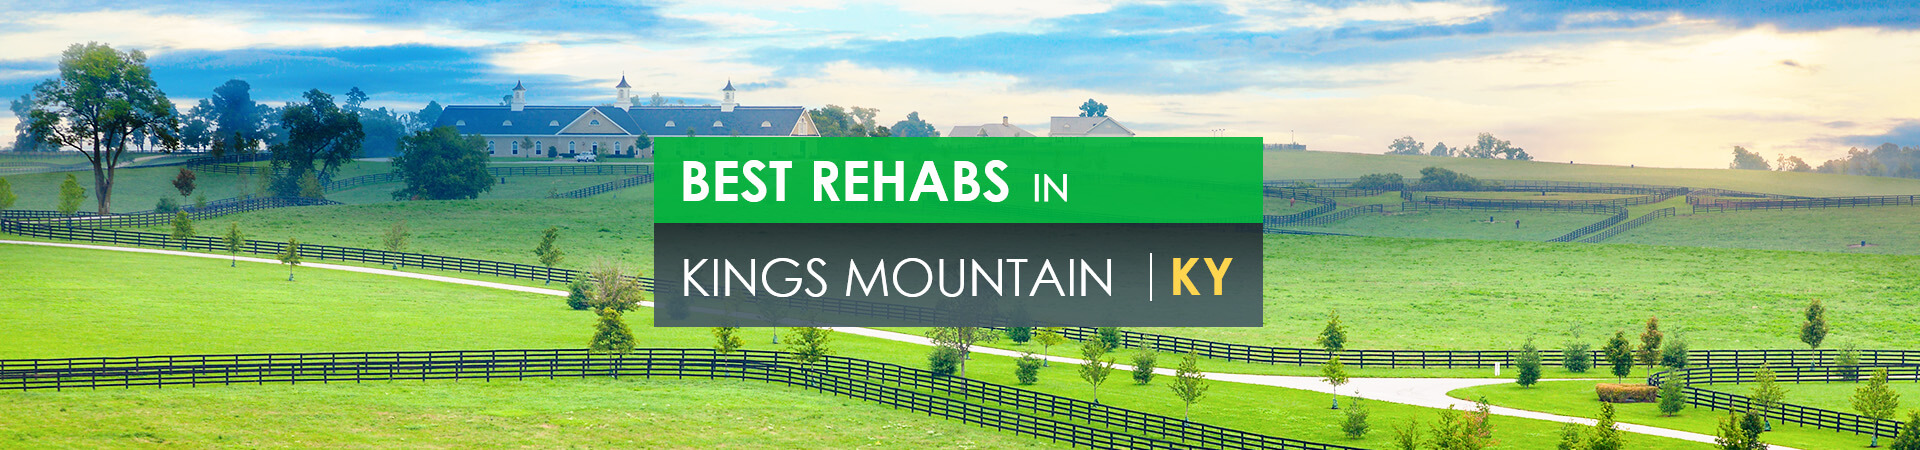 Best rehabs in Kings Mountain, KY